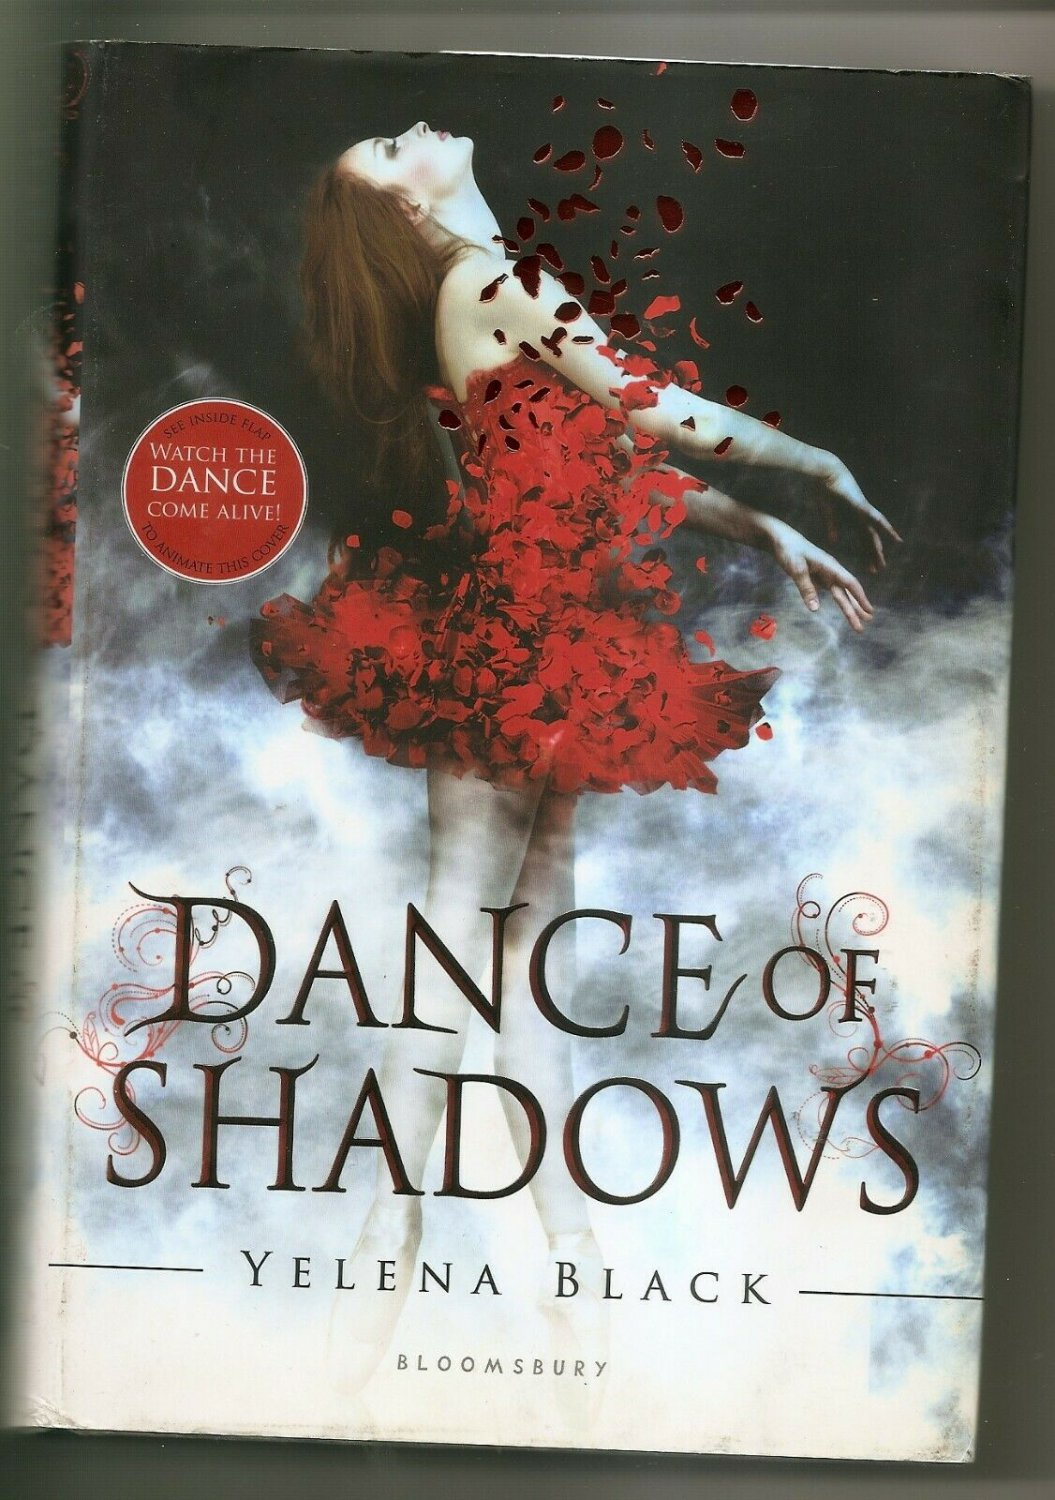 DANCE OF SHADOWS by Yelena Black Hardcover Dust Cover - NEW